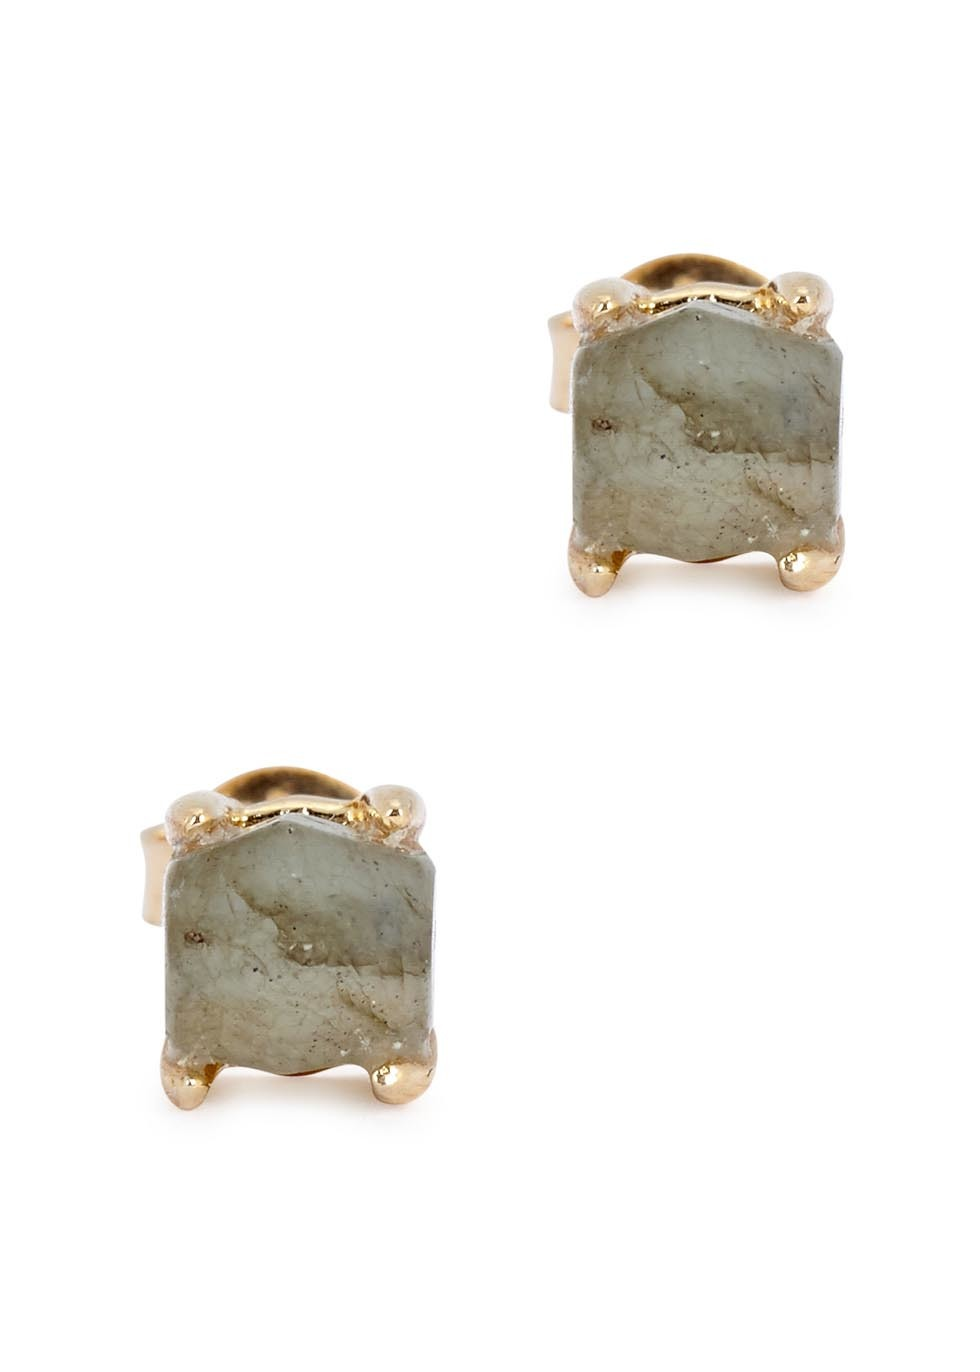 Perla Labradorite Gold Tone Earrings - secondary colour: ivory/cream; predominant colour: gold; occasions: evening; style: stud; length: short; size: small/fine; fastening: pierced; finish: metallic; material: animal skin; embellishment: jewels/stone; season: a/w 2016; wardrobe: event